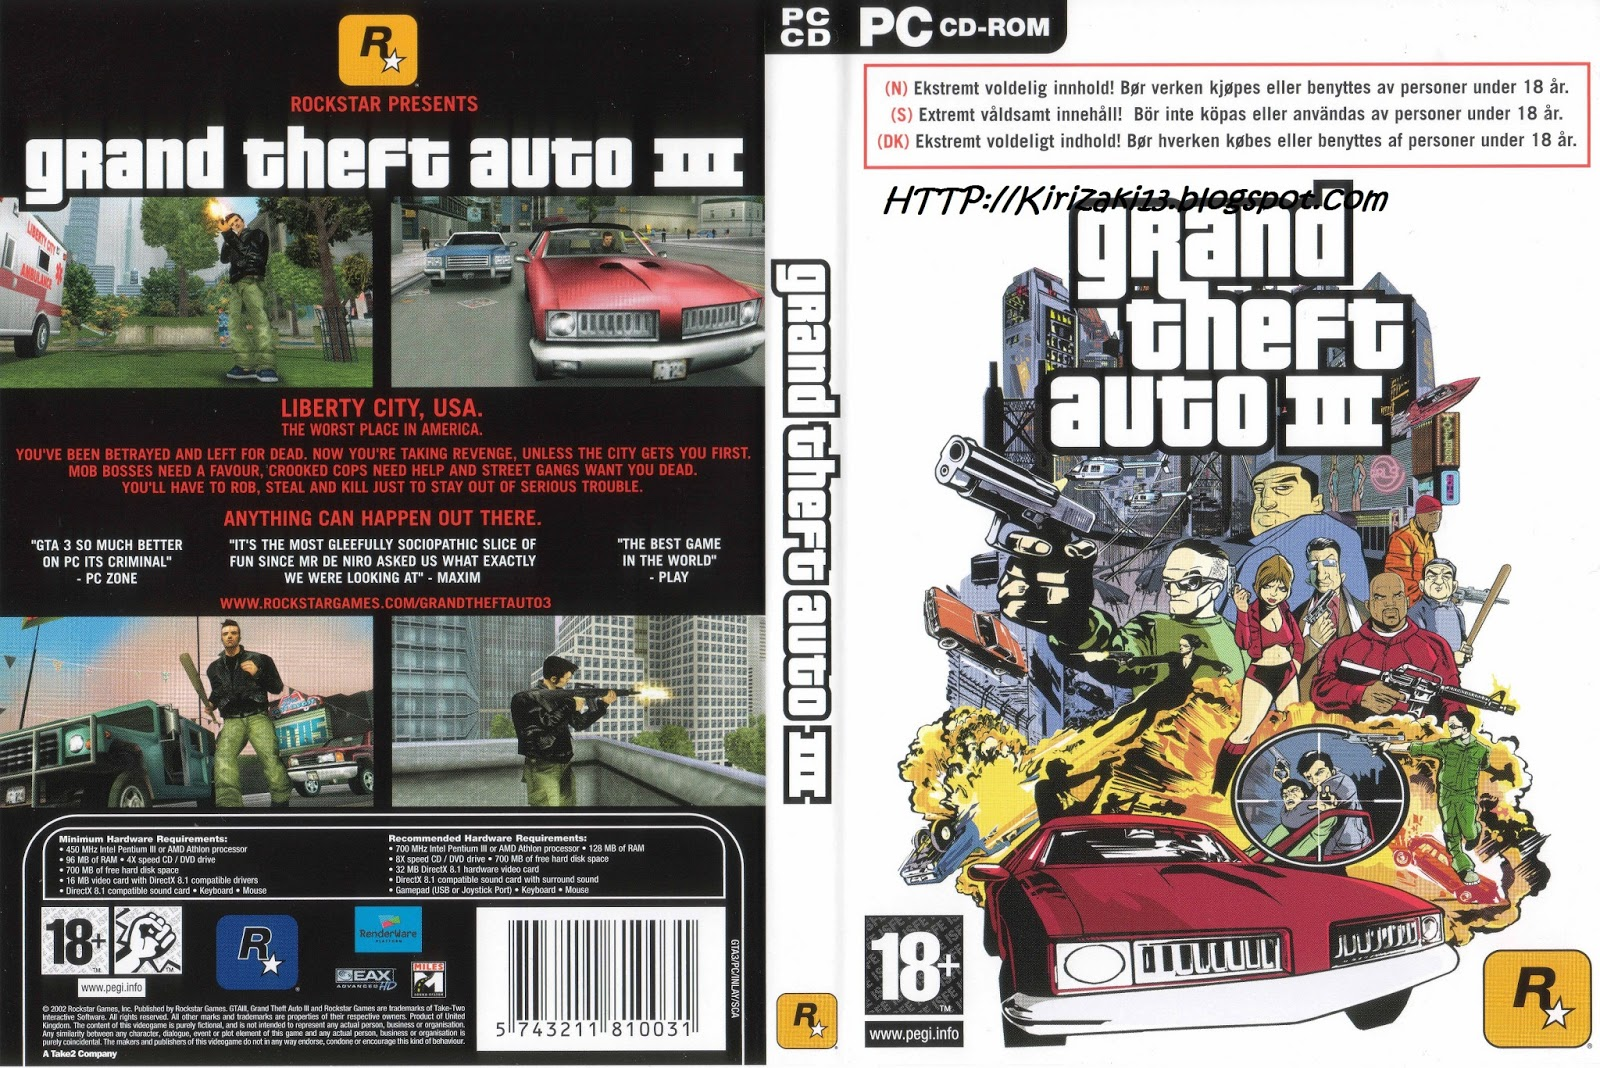 Download gta 3 for pc in mb